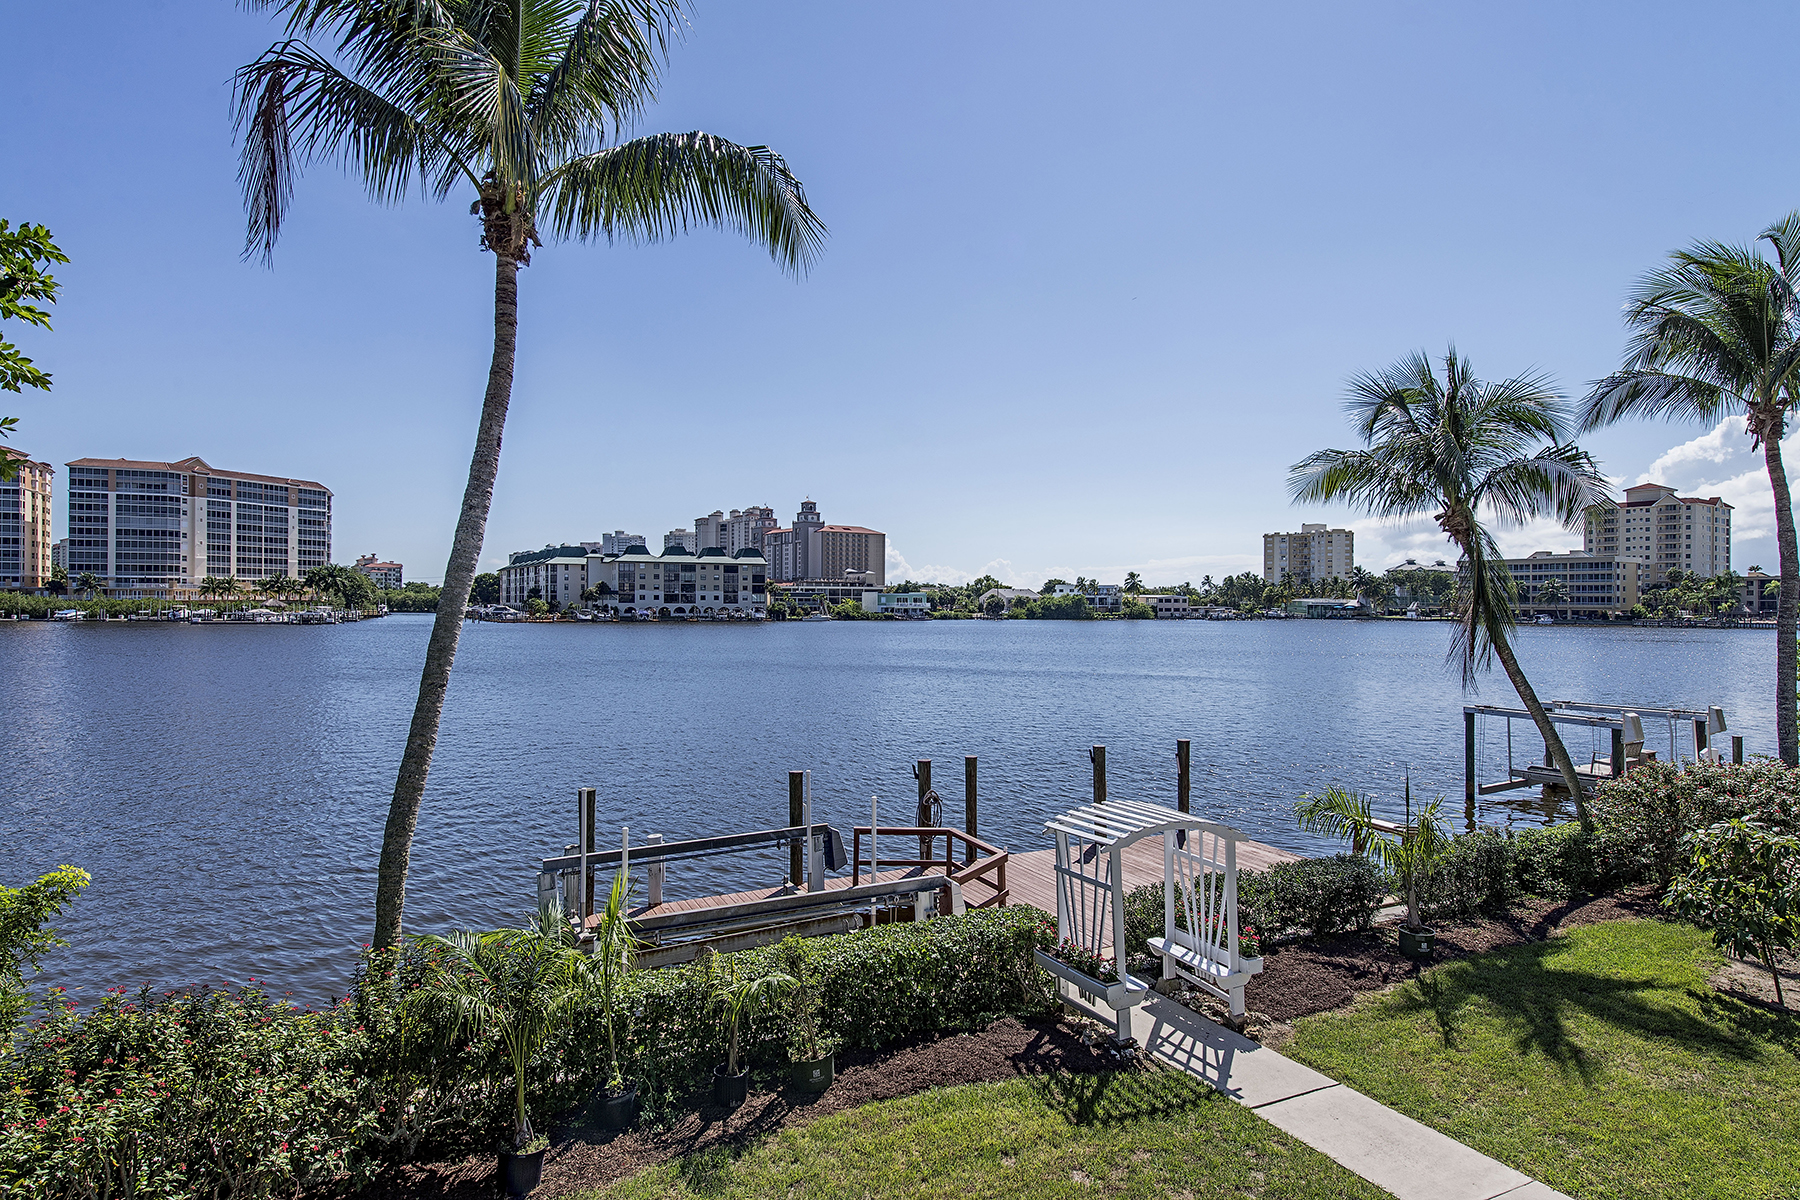 Property For Sale at VANDERBILT BEACH - CONNERS